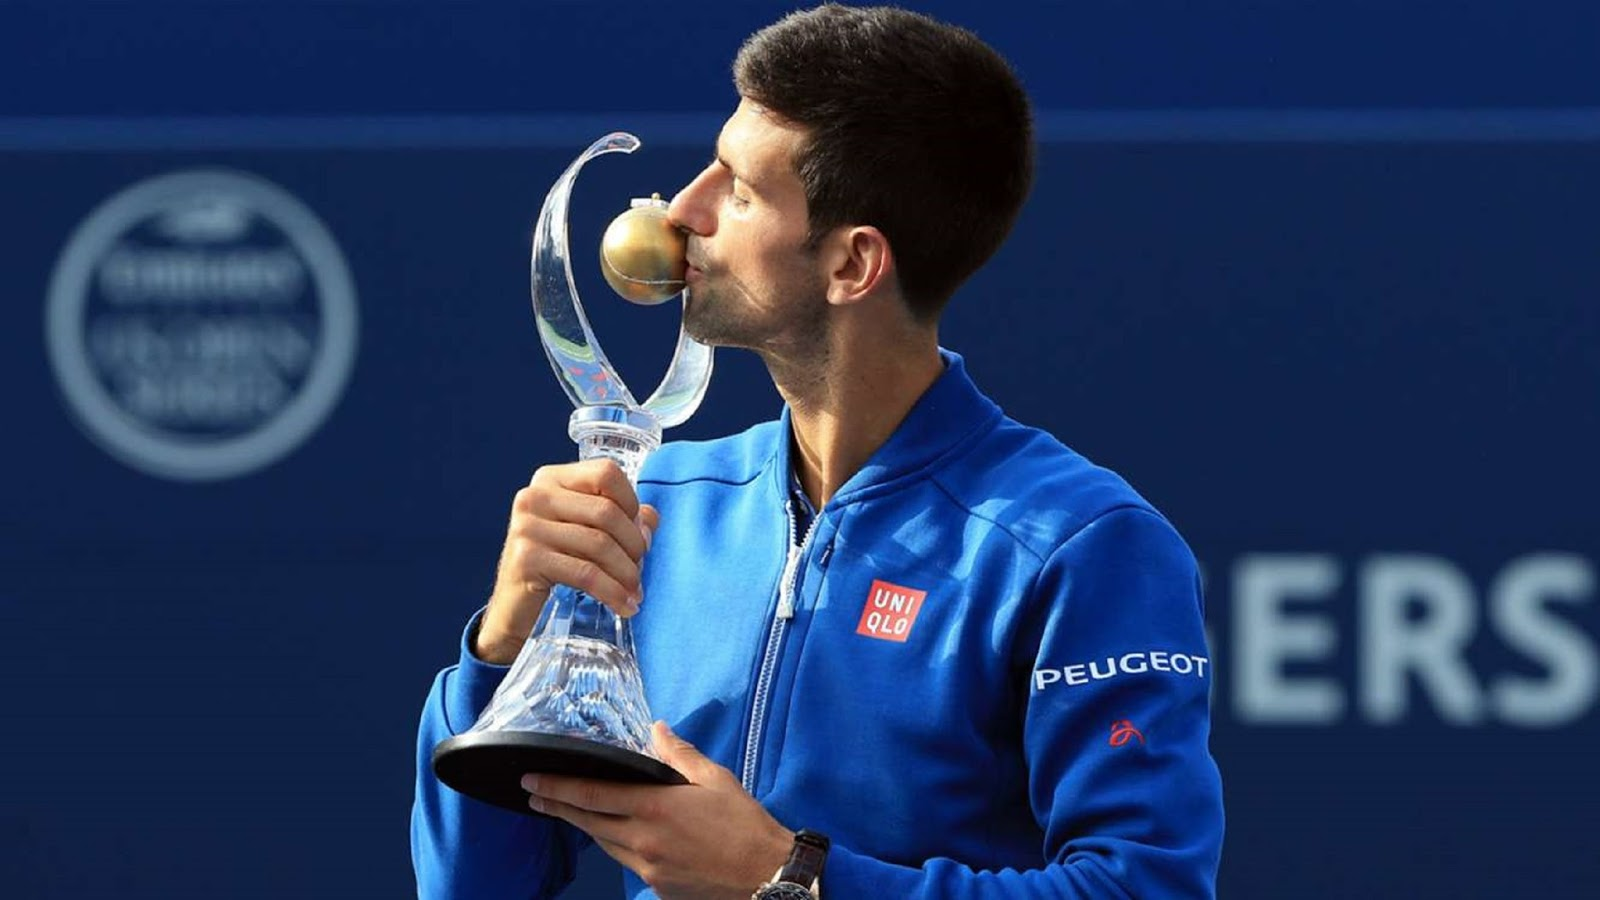 NOVAK DJOKOVIC 5